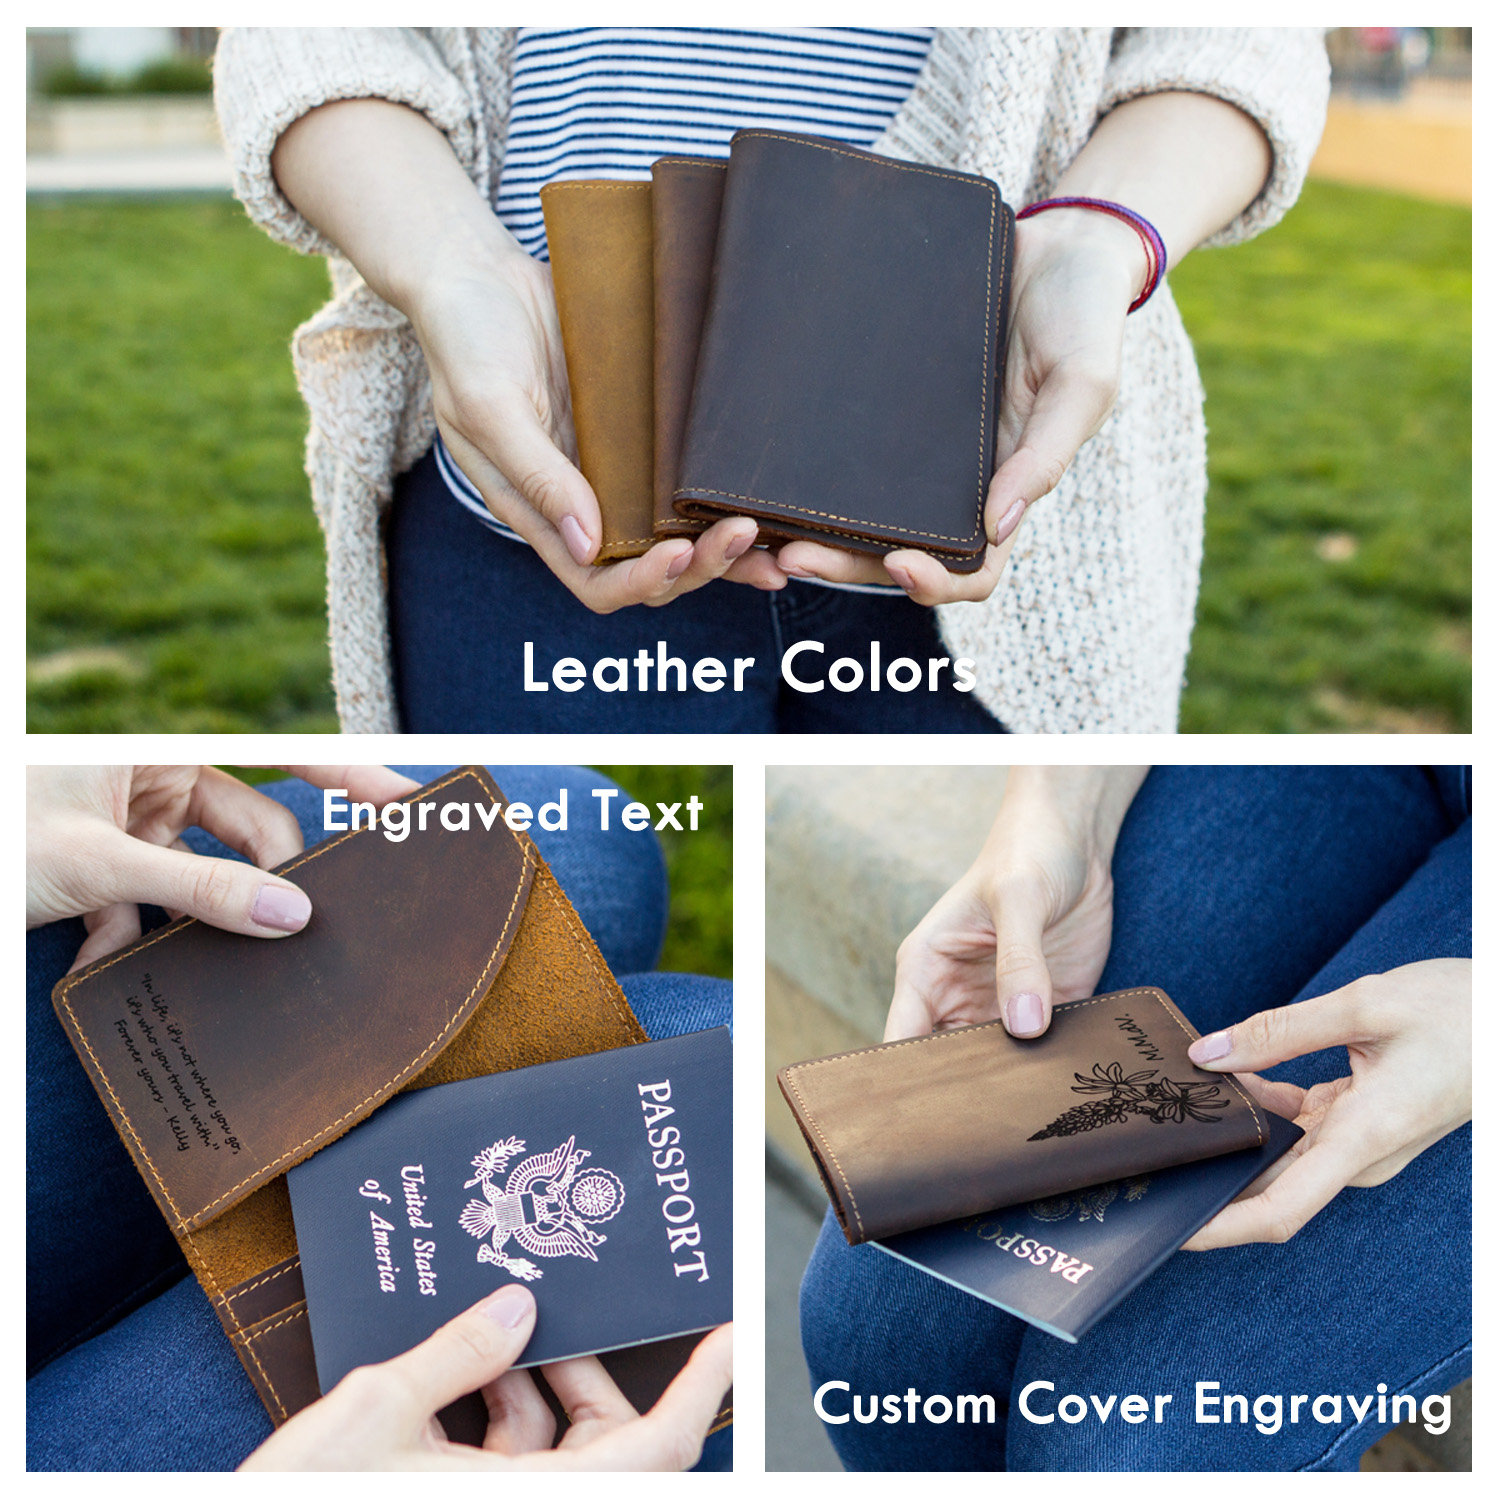 3rd Anniversary Leather Gift Boyfriend gift Engraved Passport Holder Personalized Leather Passport Cover Travel Wallet anniversry gift